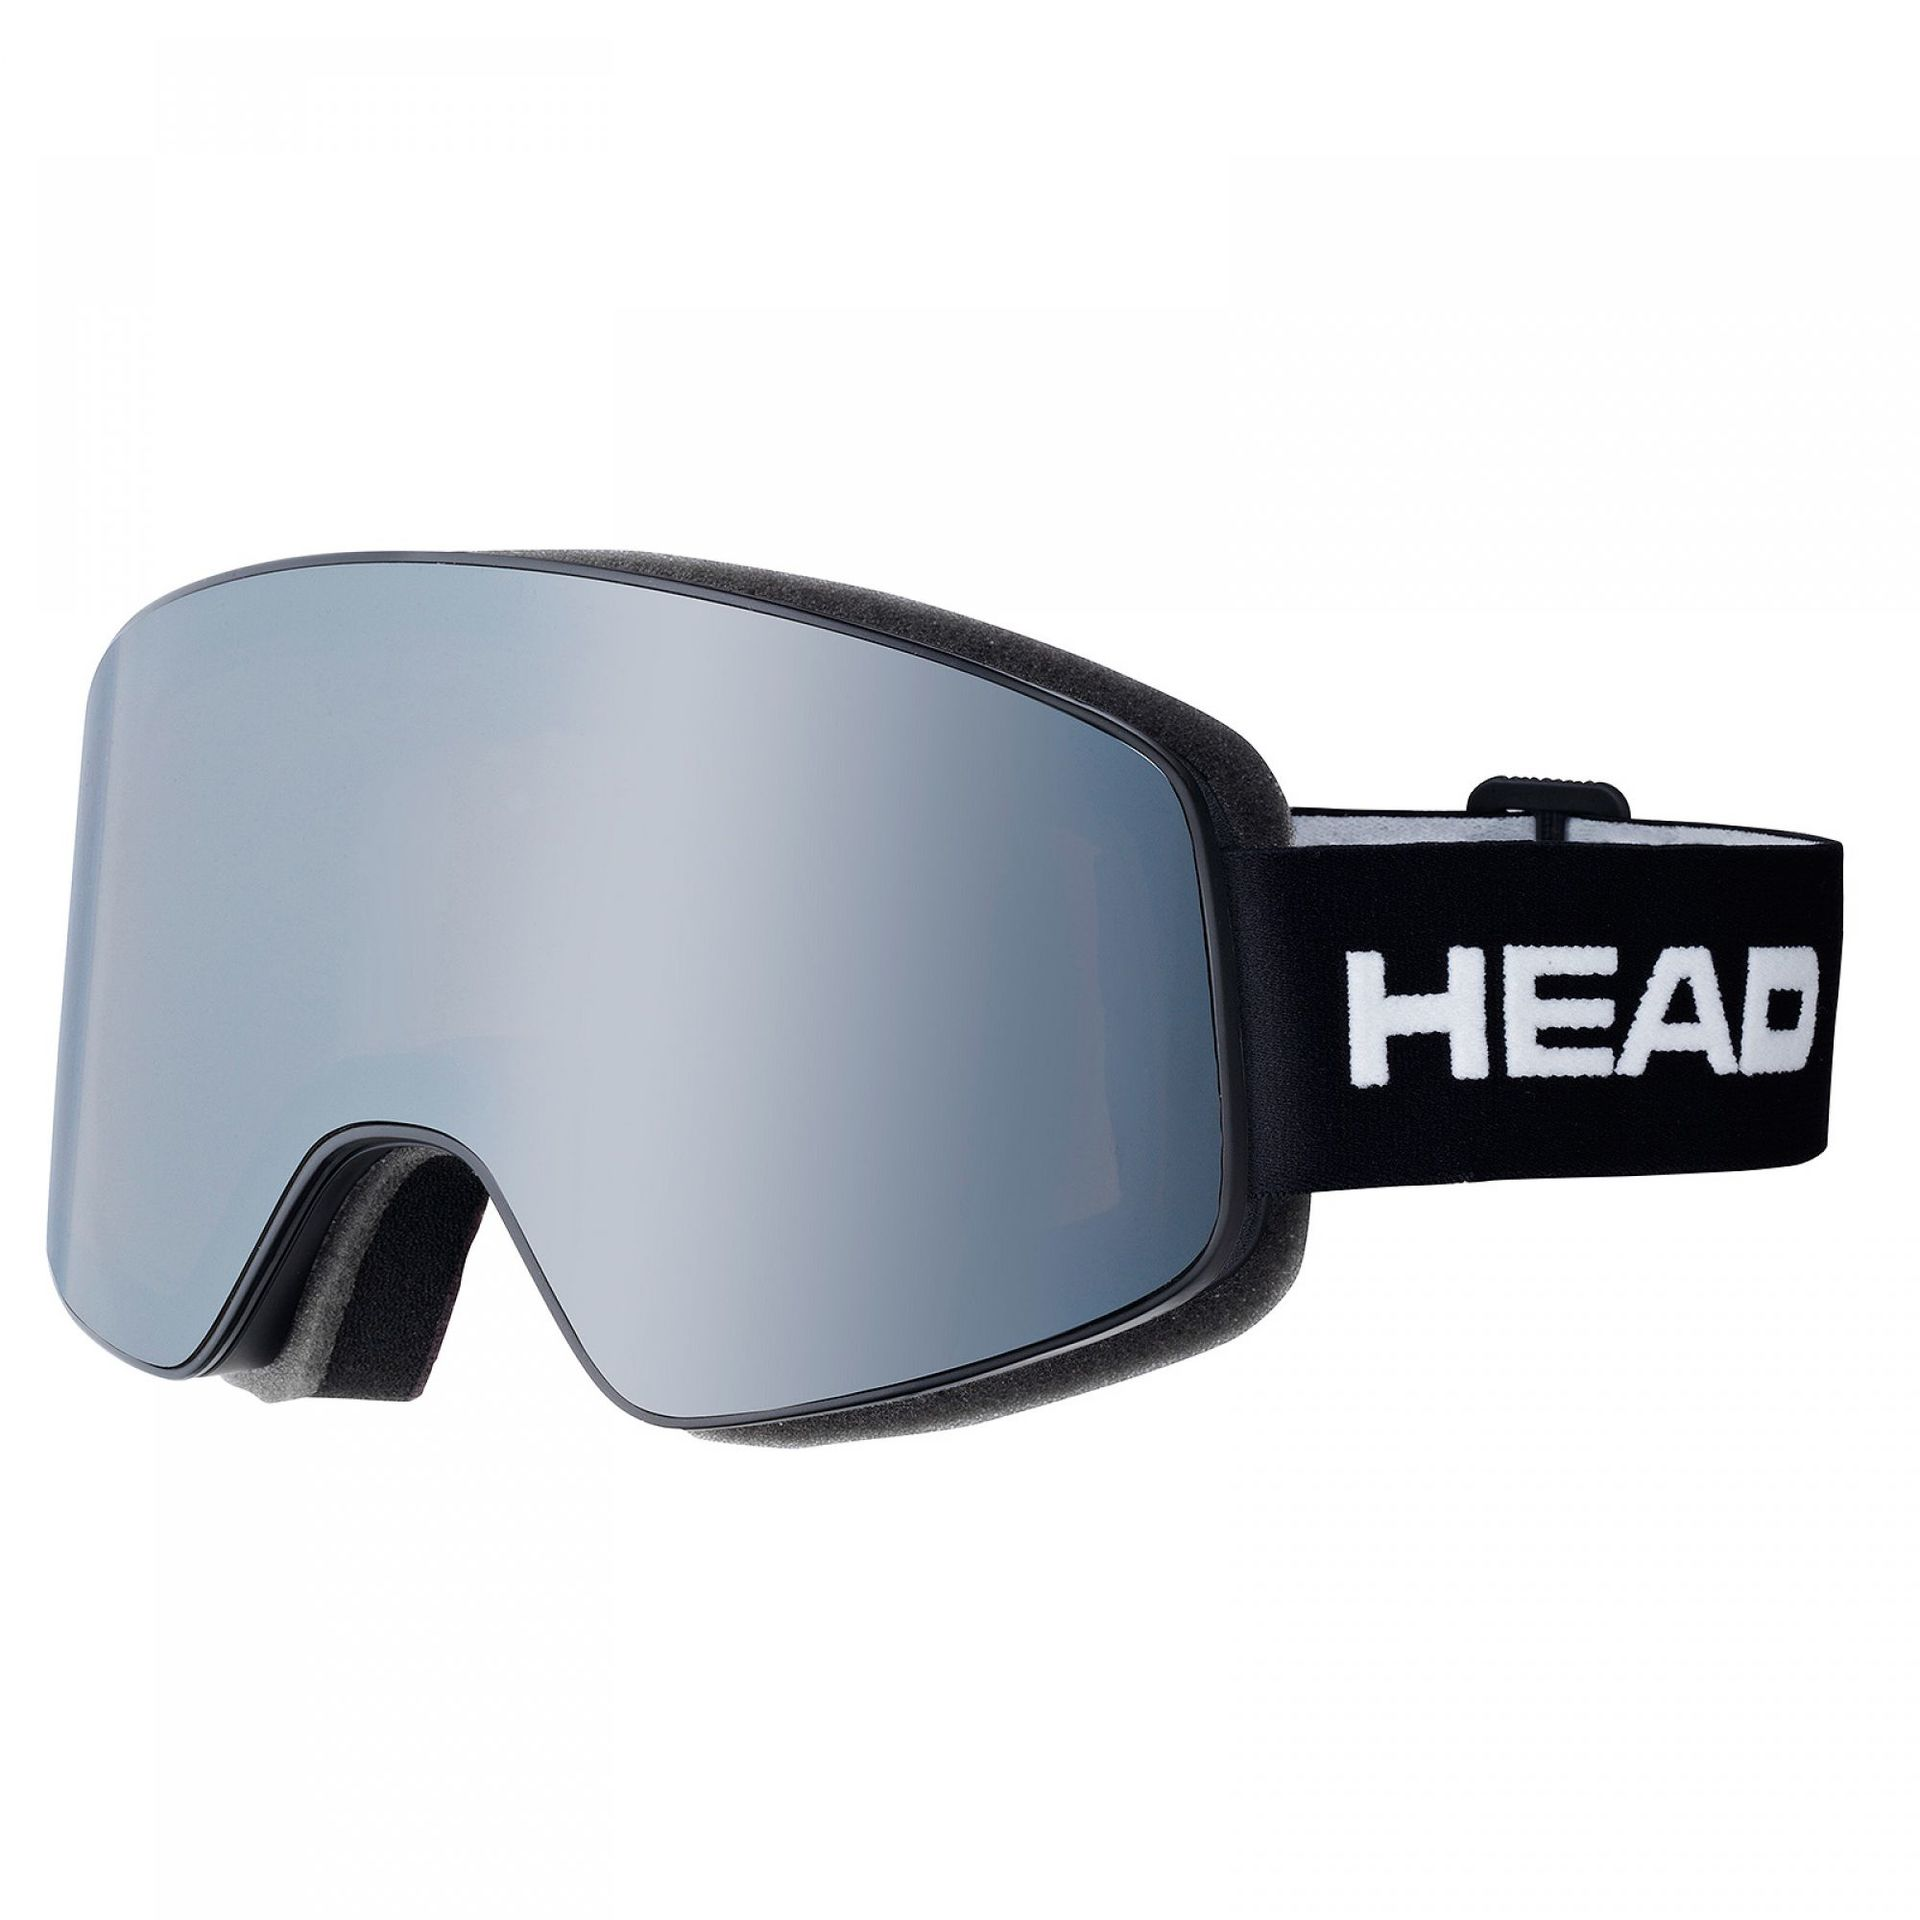 GOGLE HEAD HORIZON RACE BLACK 5